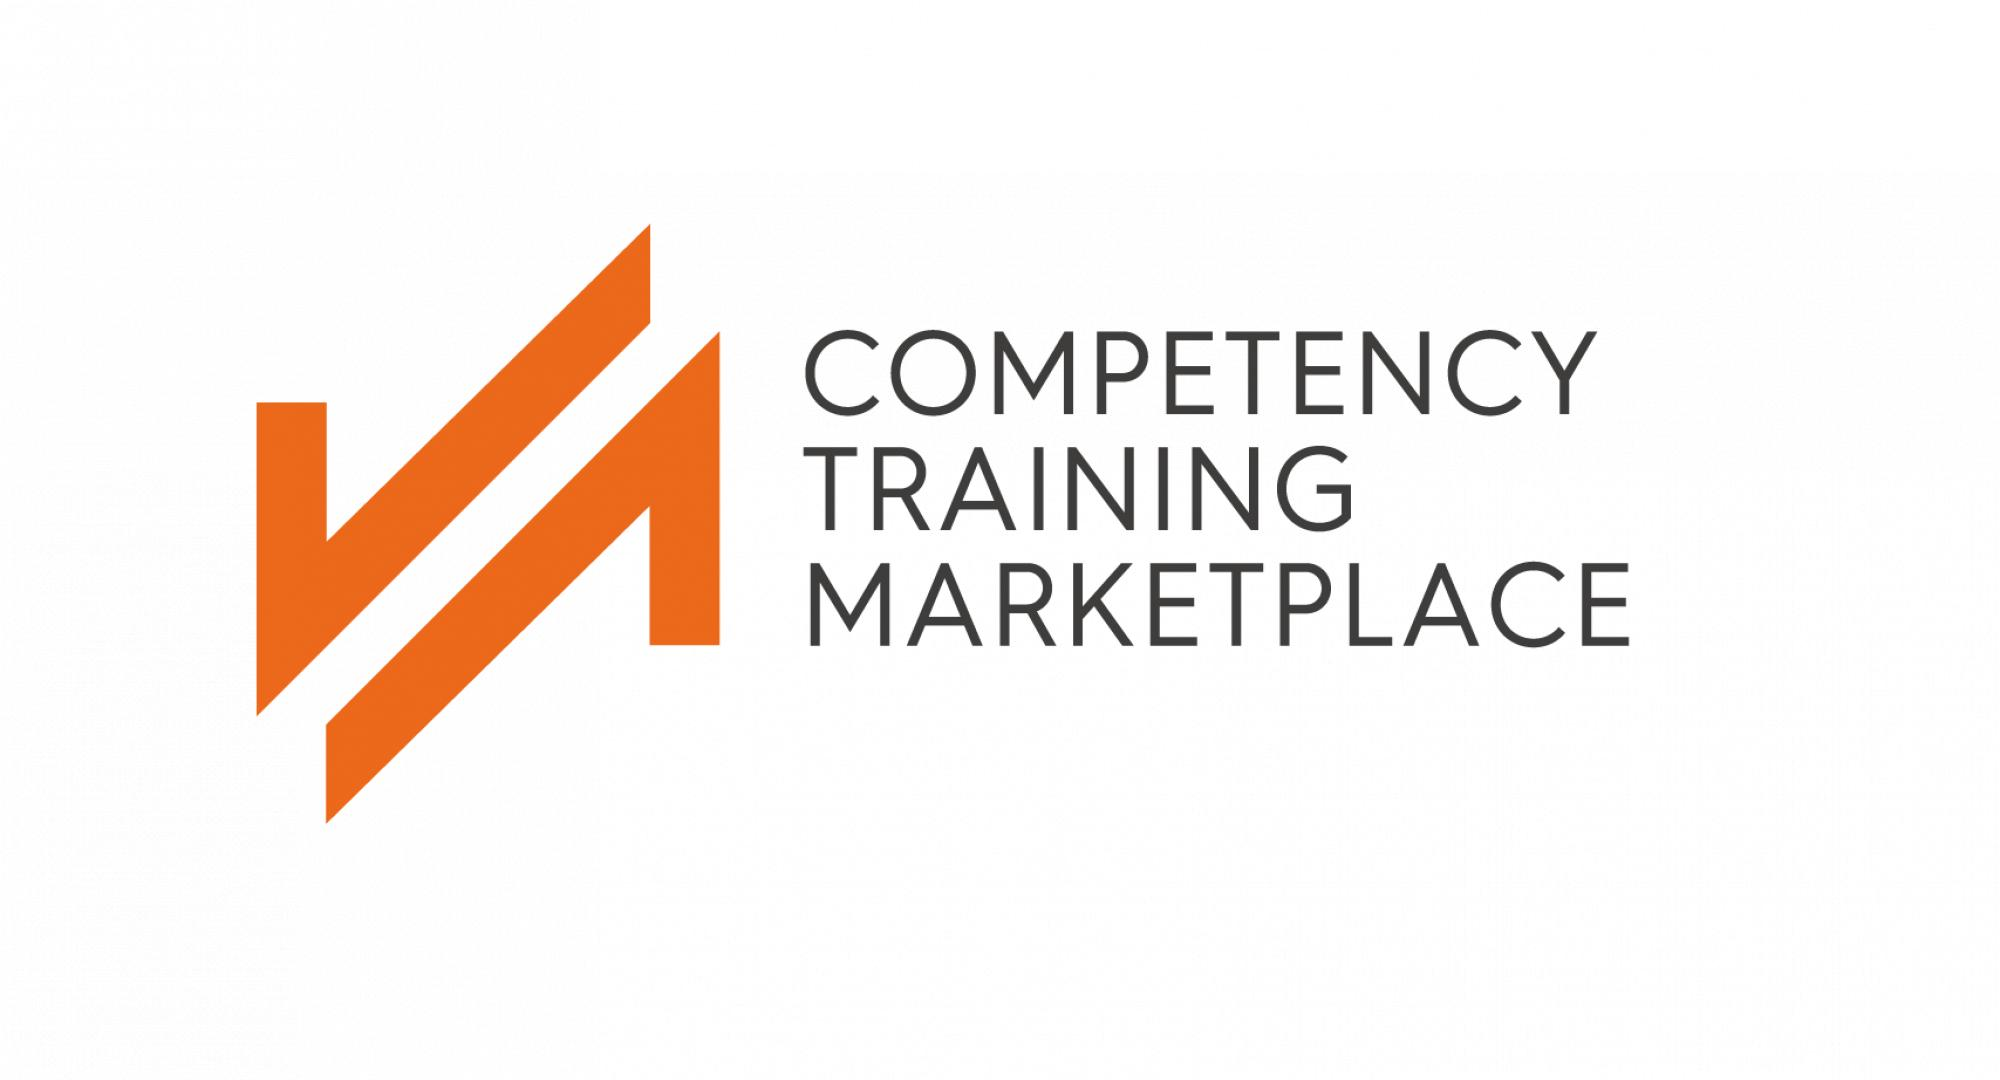 Sopra Steria announces the launch of its online Competency Training Marketplace